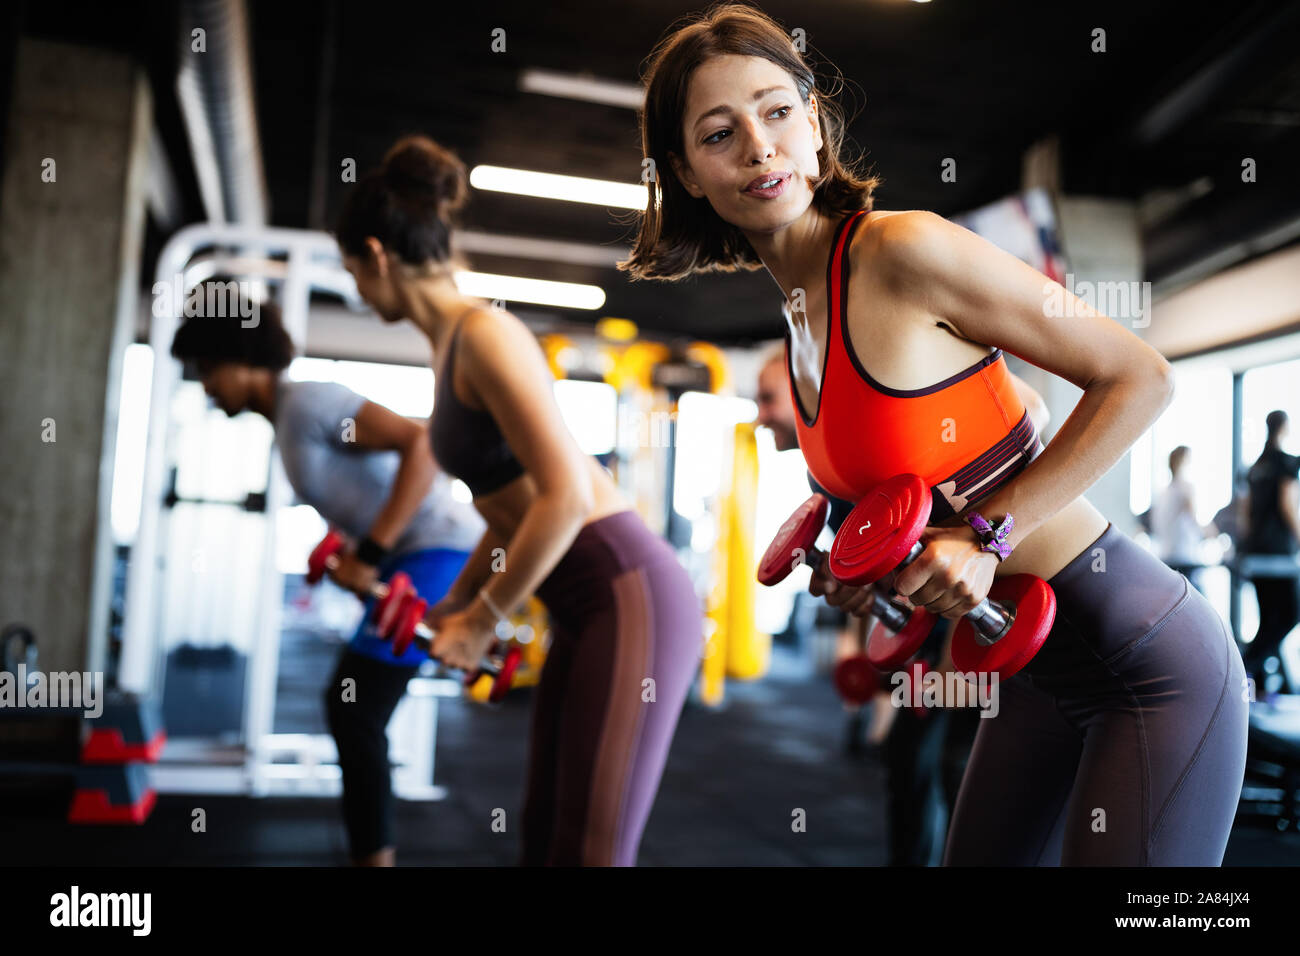 Beautiful Fit Women Working Out In Gym Stock Photo Alamy Find the confidence to give your training everything, in the greatest of women's workout wardrobes. alamy